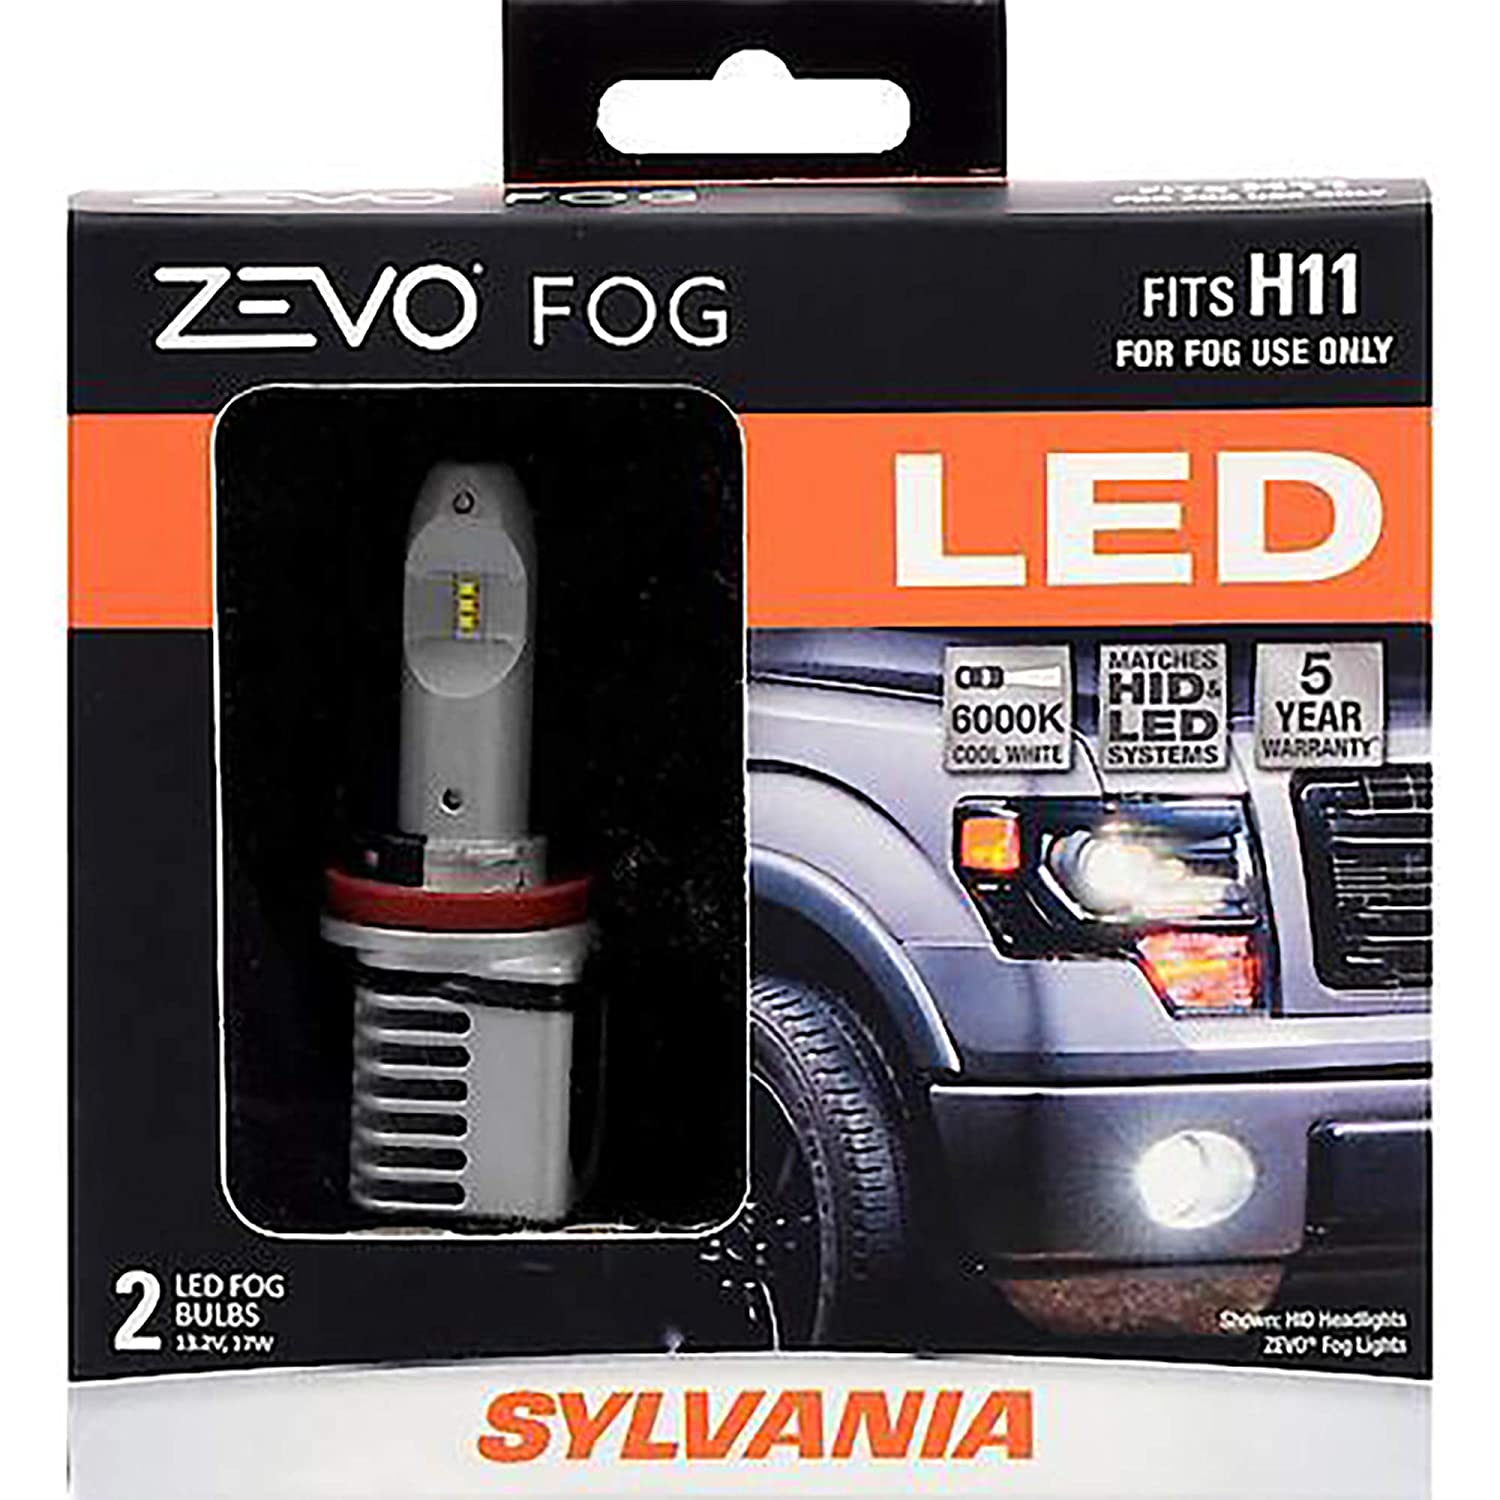 SYLVANIA - H11 ZEVO FOG LED - Premium Quality Fog Lights, Bright White LED Light Output, Matches HID & LED Headlight Lighting Systems, ...